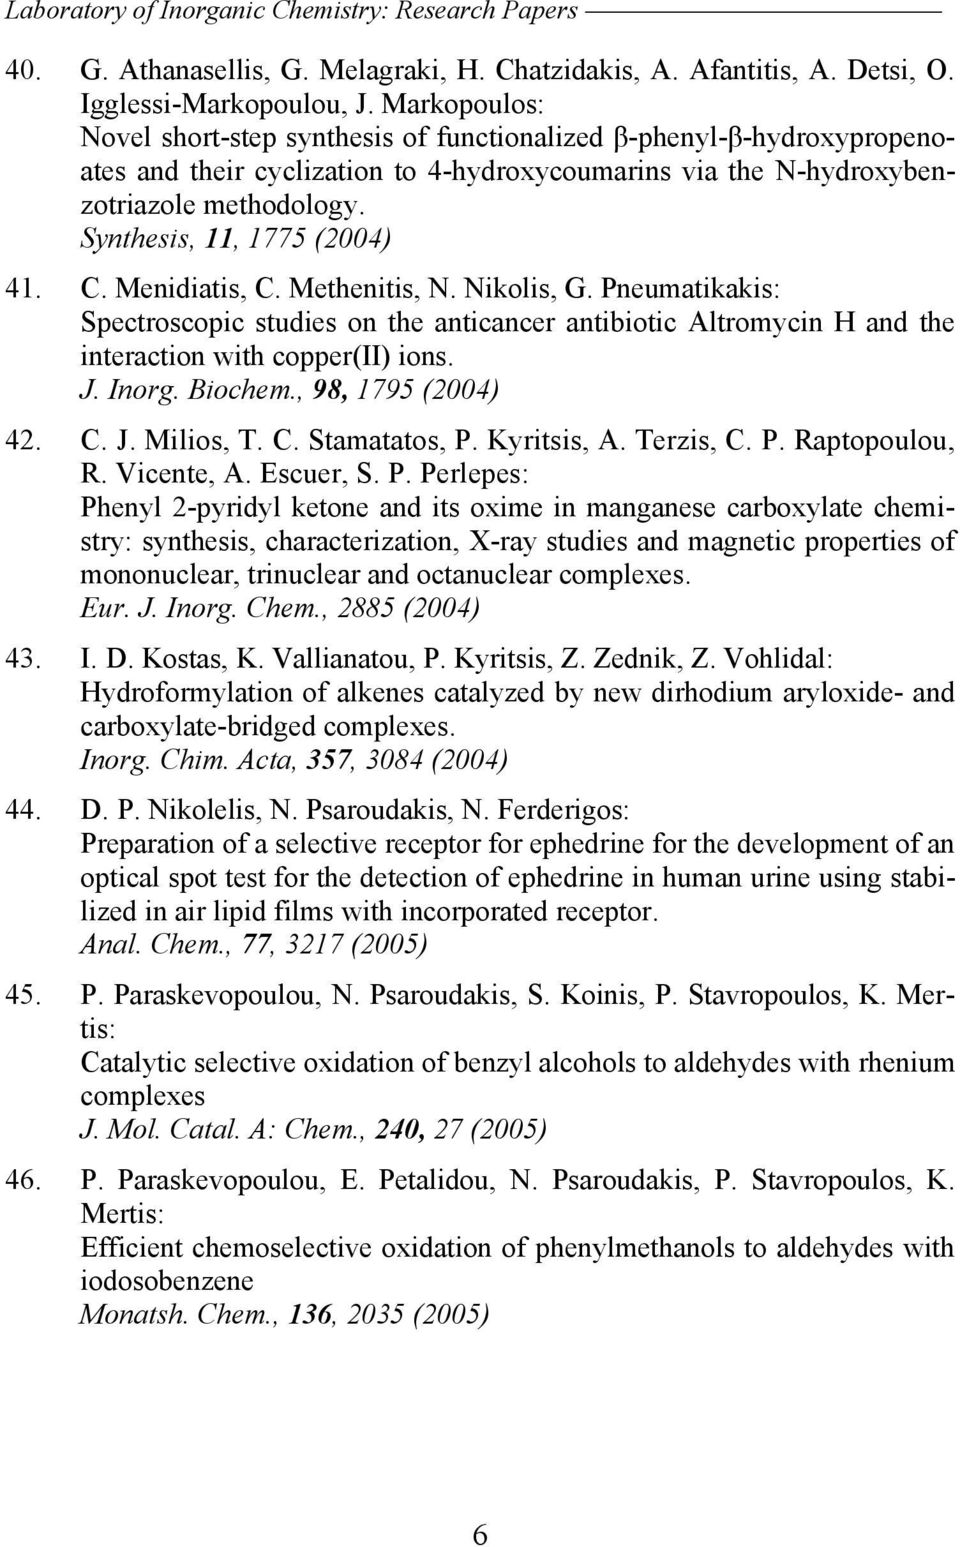 Synthesis, 11, 1775 (2004) 41. C. Menidiatis, C. Methenitis, N. Nikolis, G. Pneumatikakis: Spectroscopic studies on the anticancer antibiotic Altromycin H and the interaction with copper(ii) ions. J.